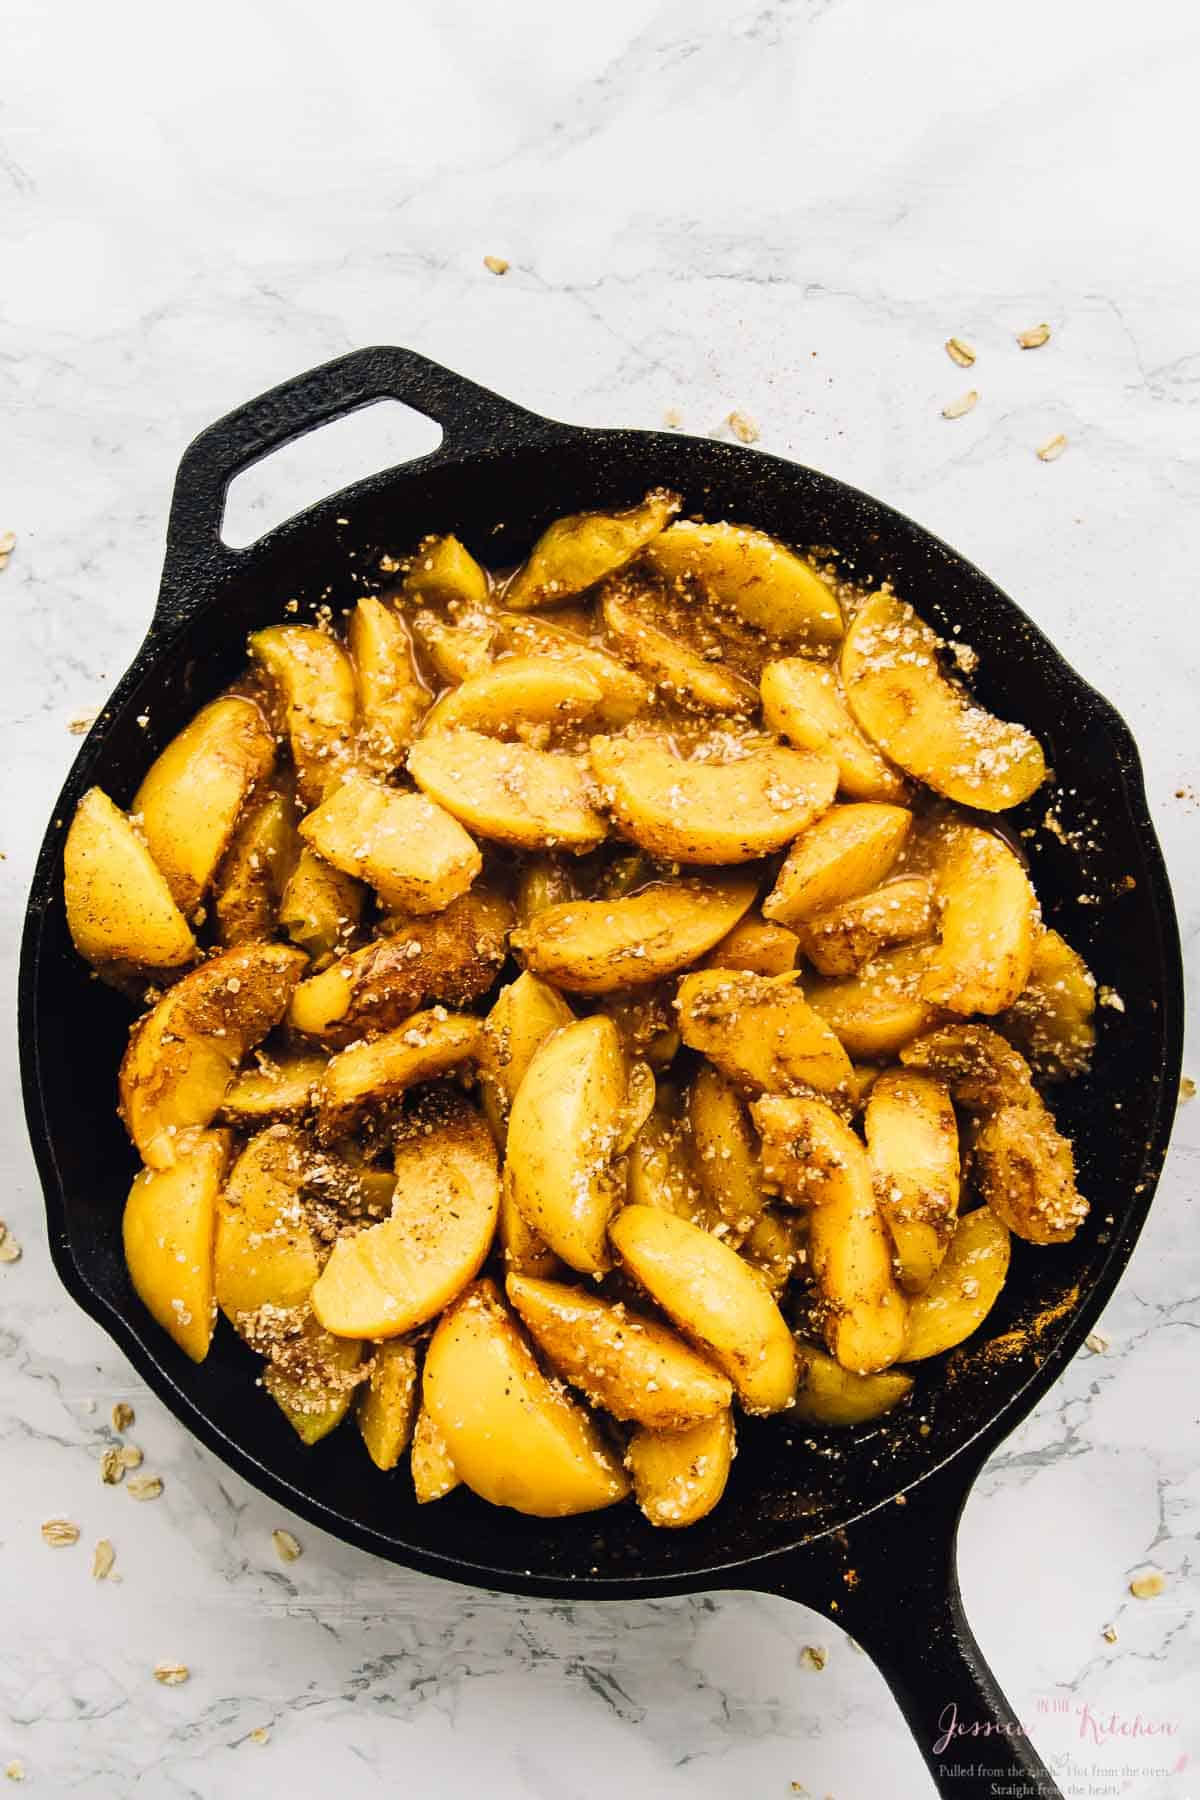 Peach slices cooking in a black skillet.